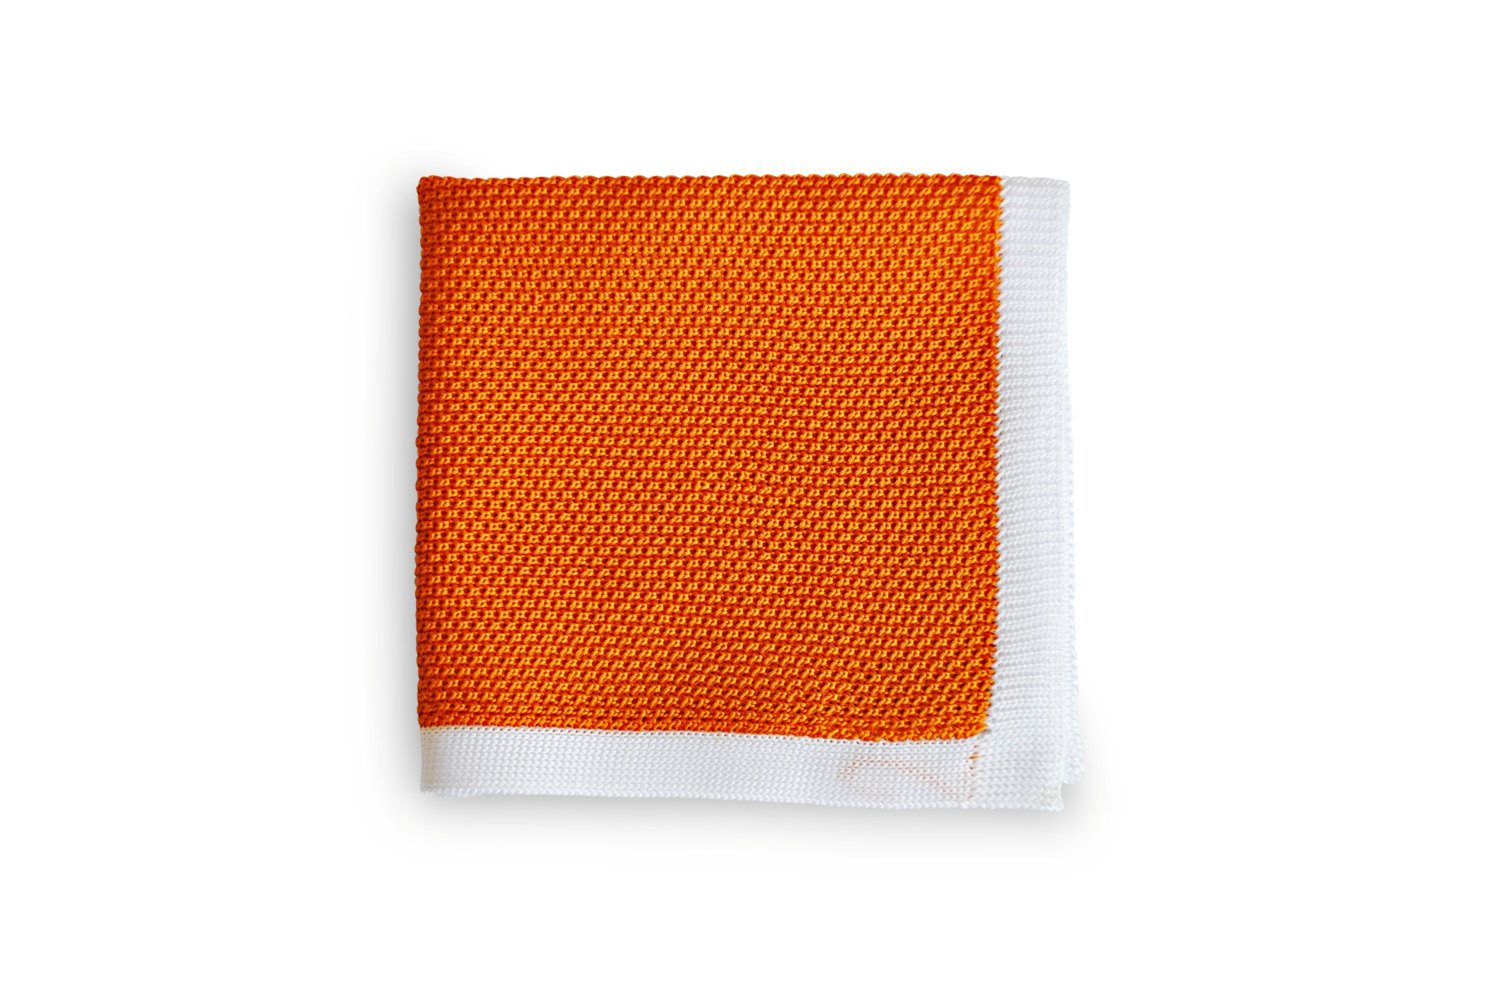 Frederick Thomas knitted Orange pocket square with White Edging FT3175